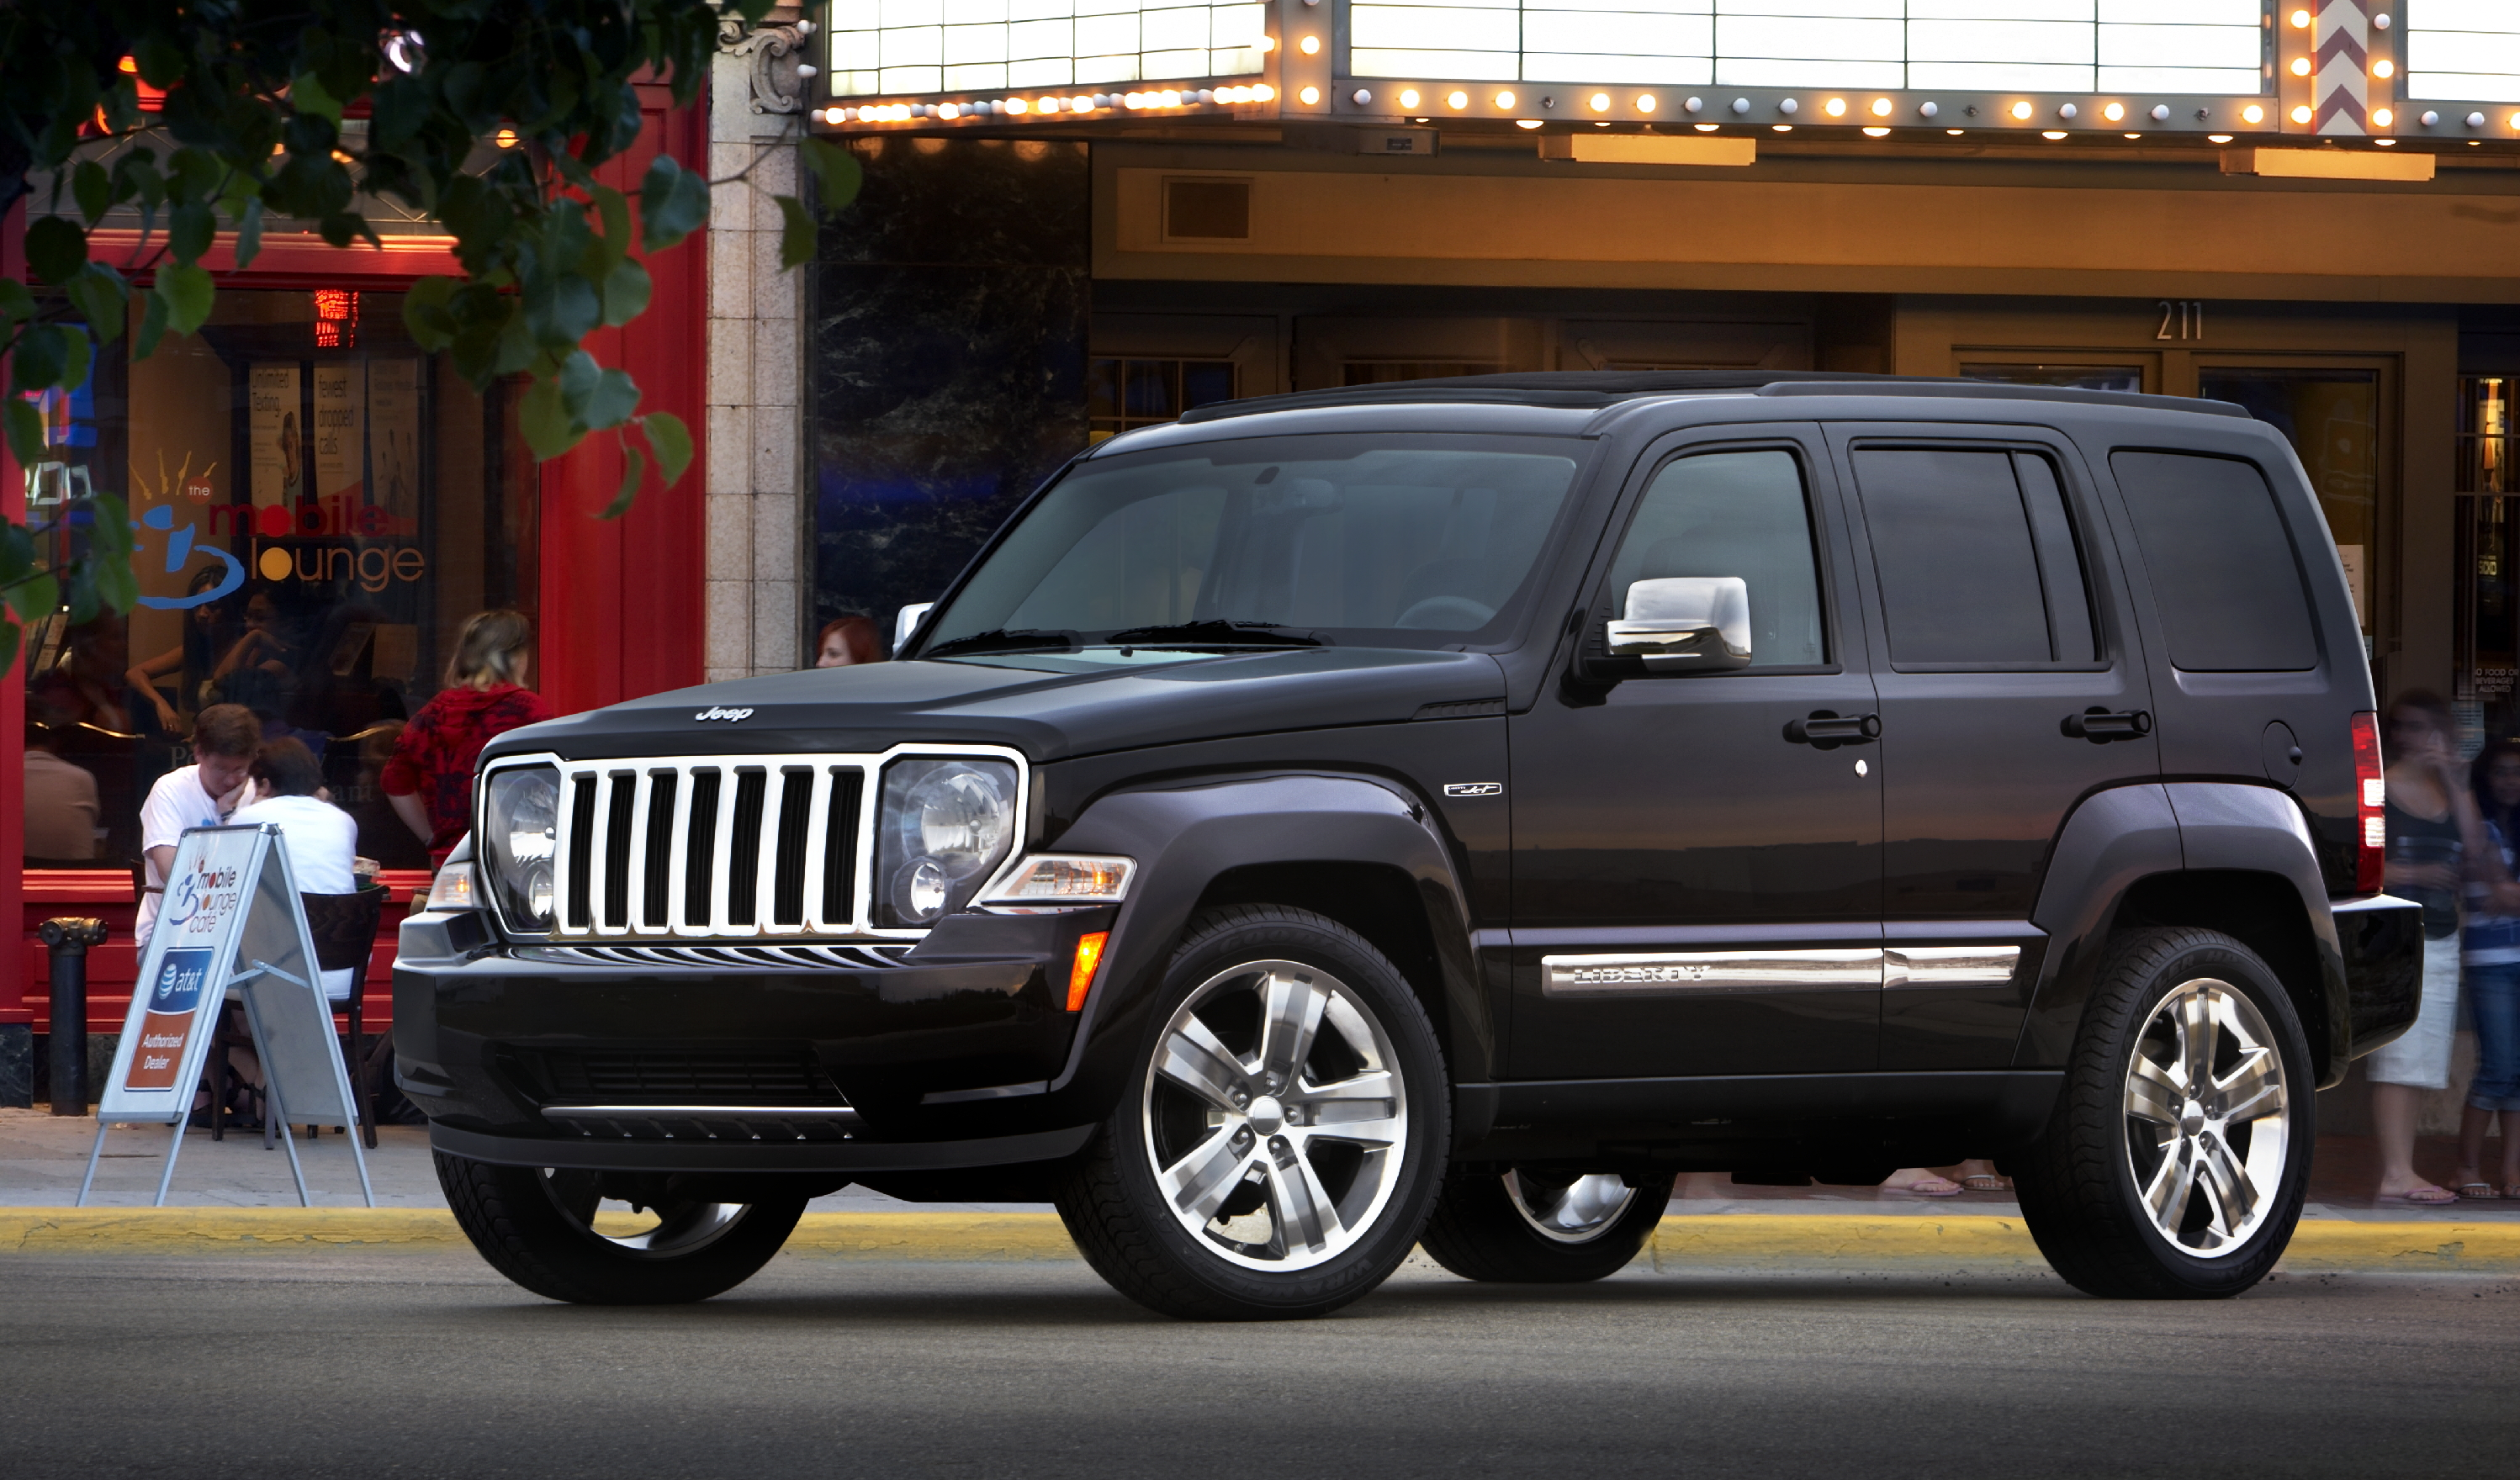 Jeep Liberty Jet Edition. Show Press Release